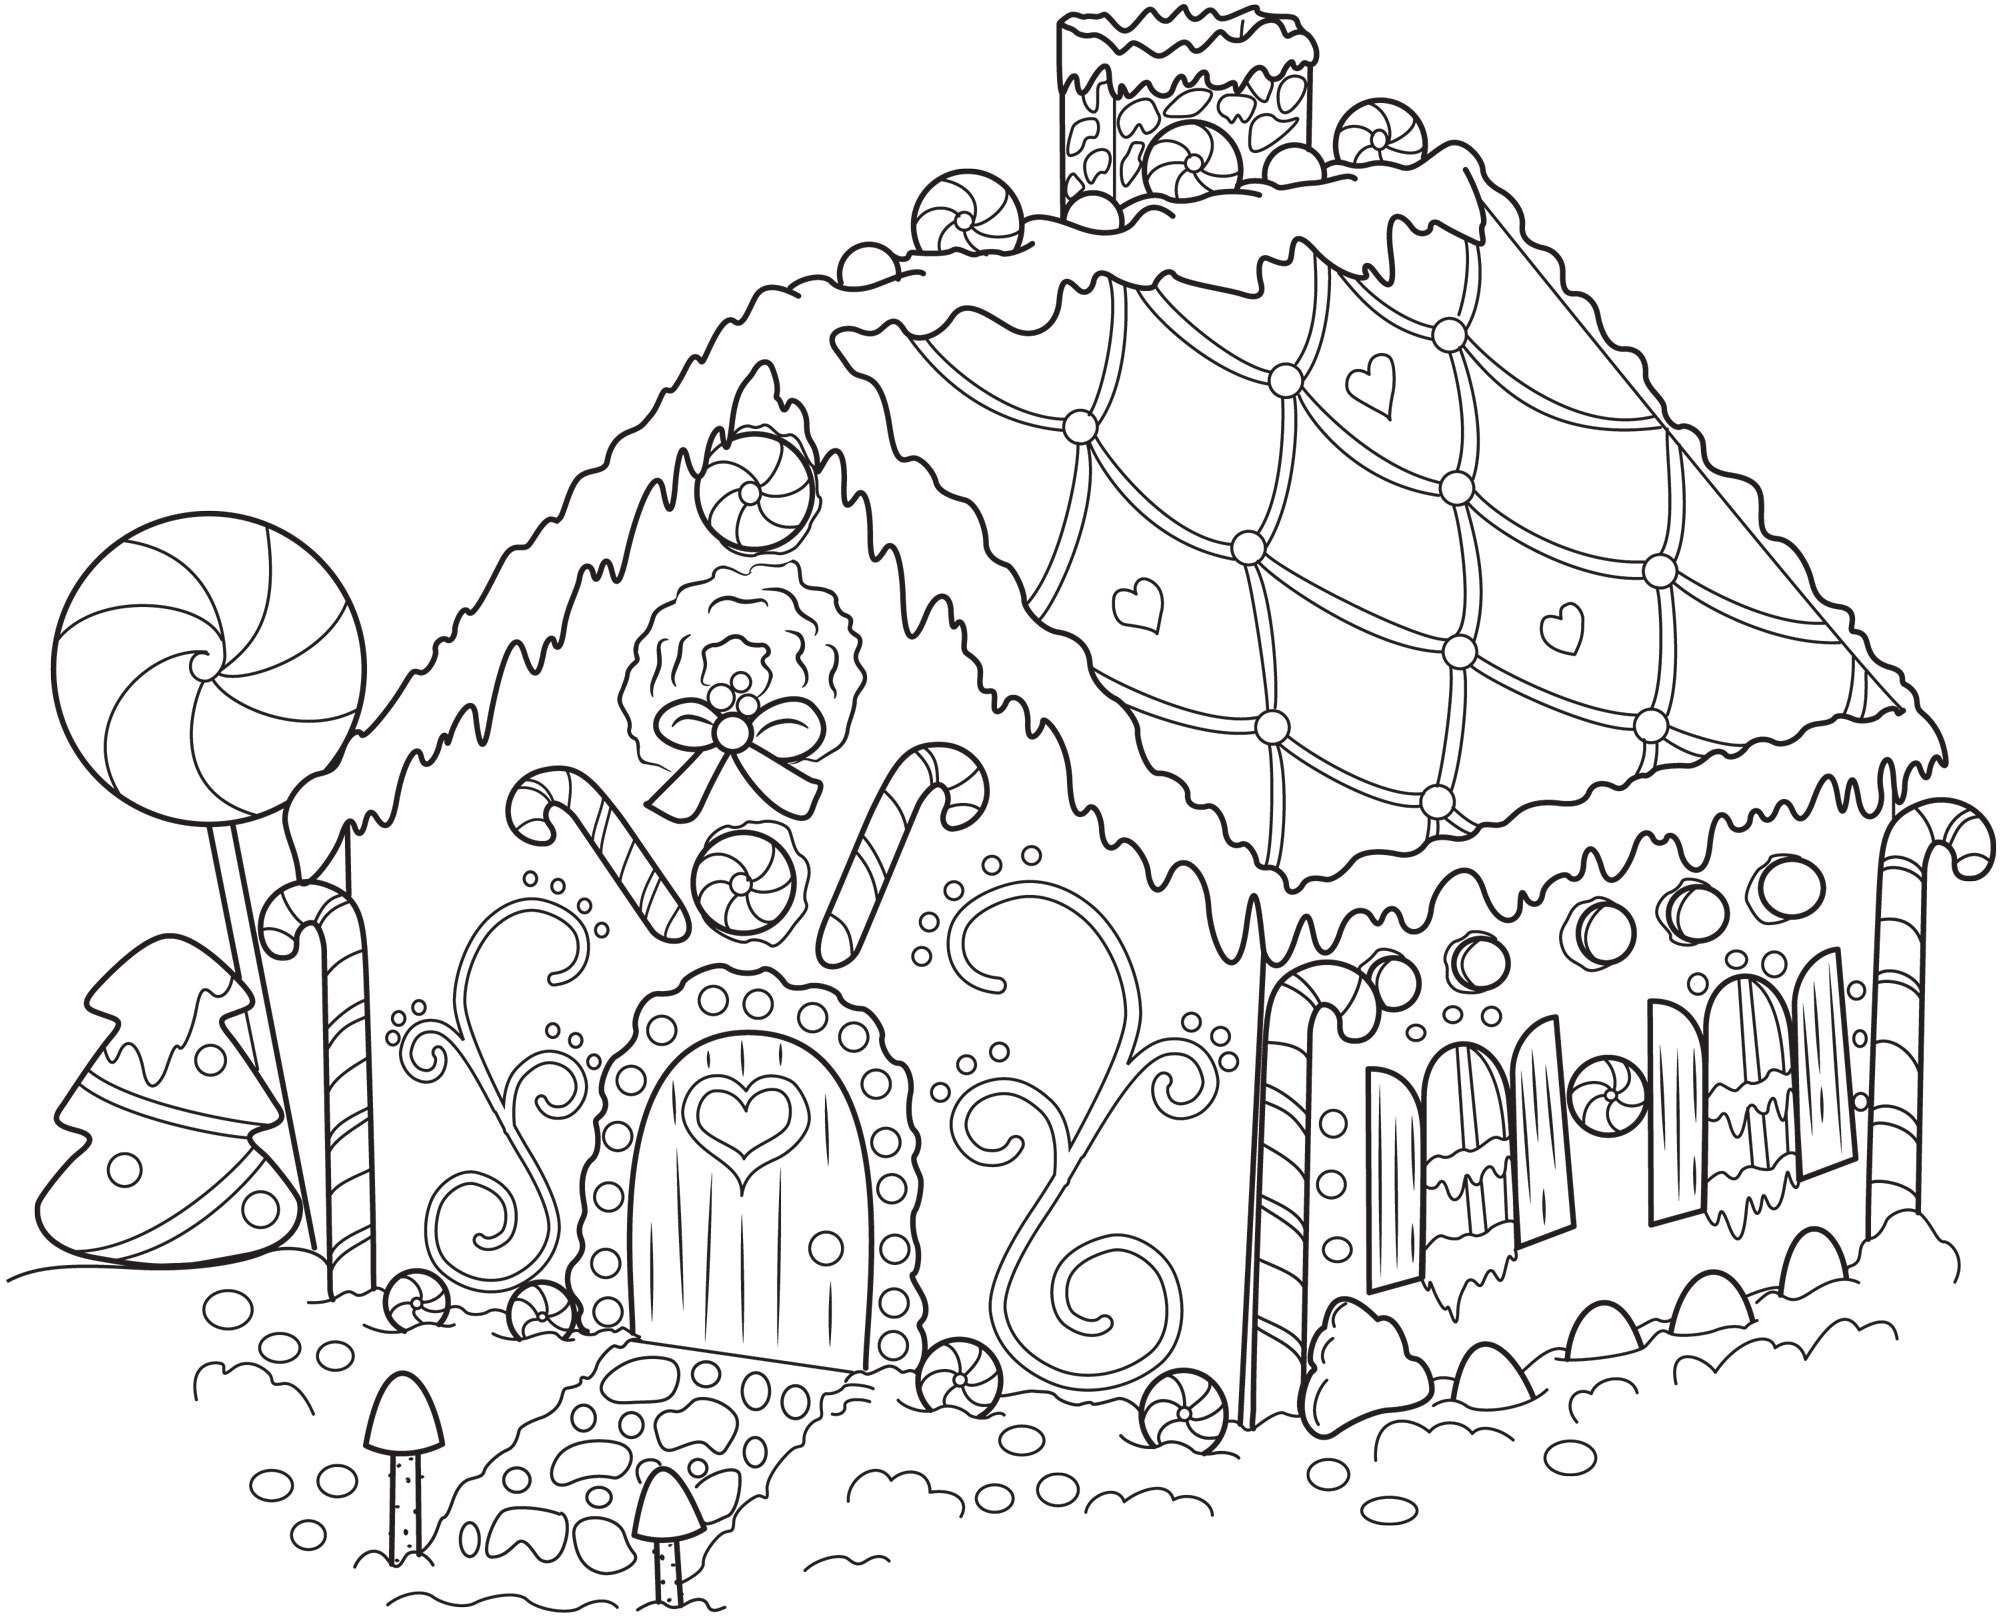 Coloring #coloringpages #coloringpagesforkids